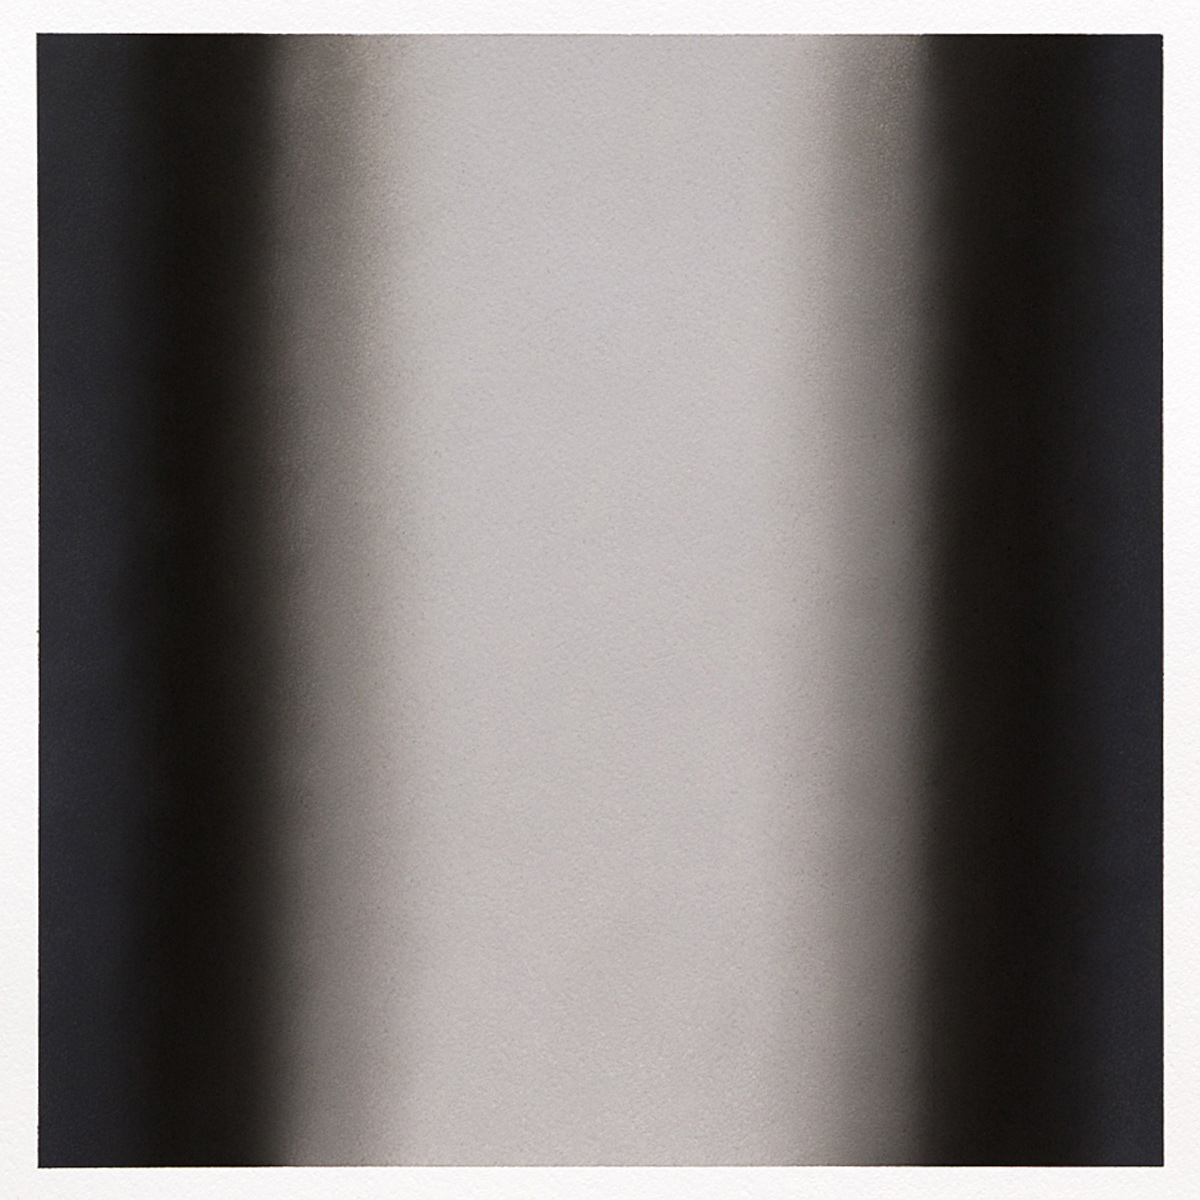 Gray Series #5, 2013, pastel on paper, image 14 x 14 in. (36 x 36 cm.), sheet 30 x 22 in. (76 x 56 cm.)